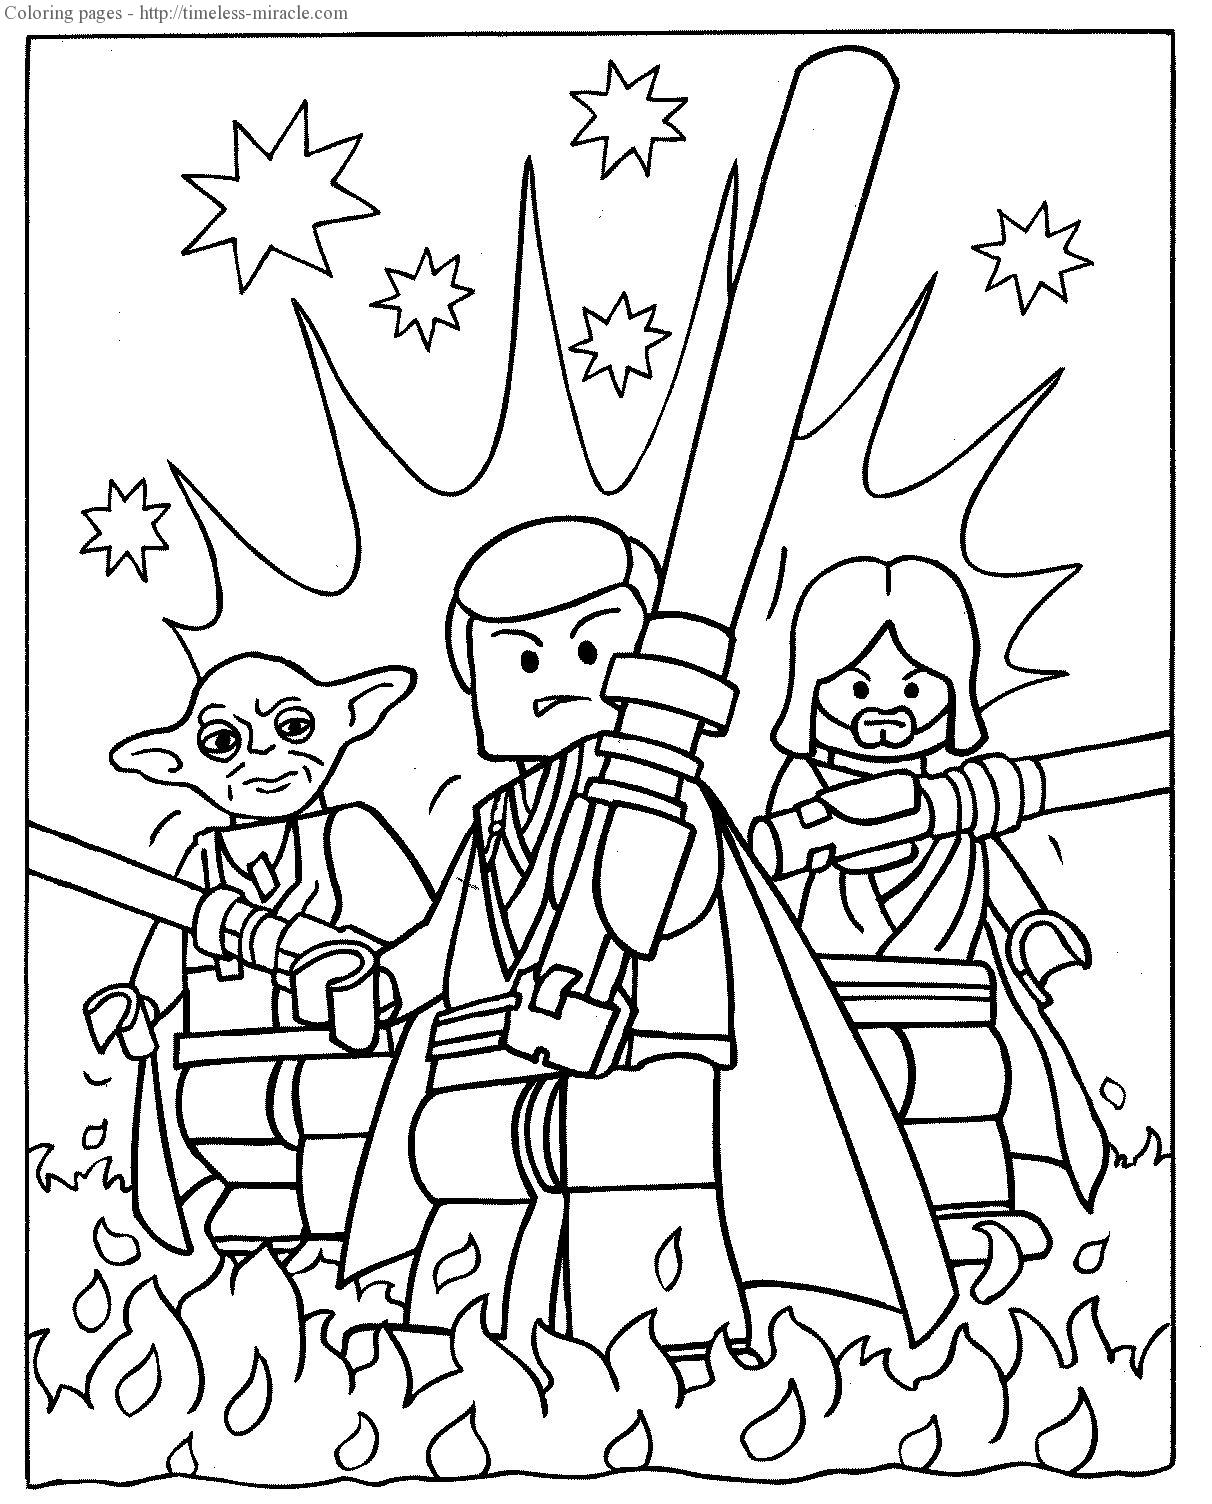 lego star wars coloring pages printable lego star wars coloring pages to download and print for free pages lego printable wars star coloring